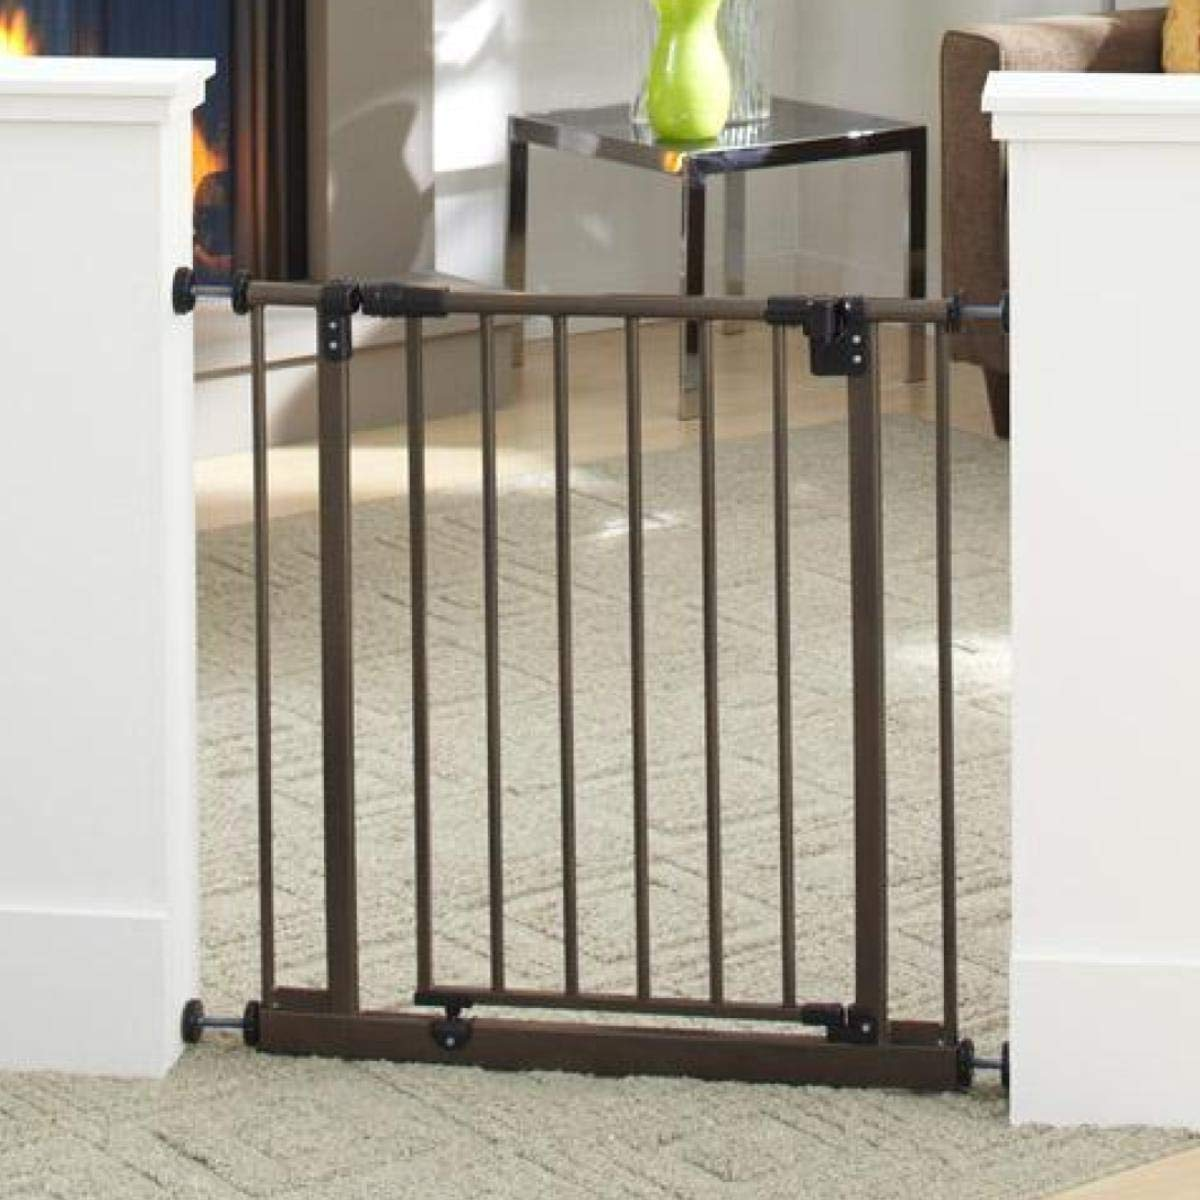 North States 38.5 Wide Easy-Close Baby Gate The Multi-Directional Swing gate with Triple Locking System – Ideal for doorways or Between Rooms. Pressure Mount. Fits 28 -38.5 Wide 29 Tall, Bronze